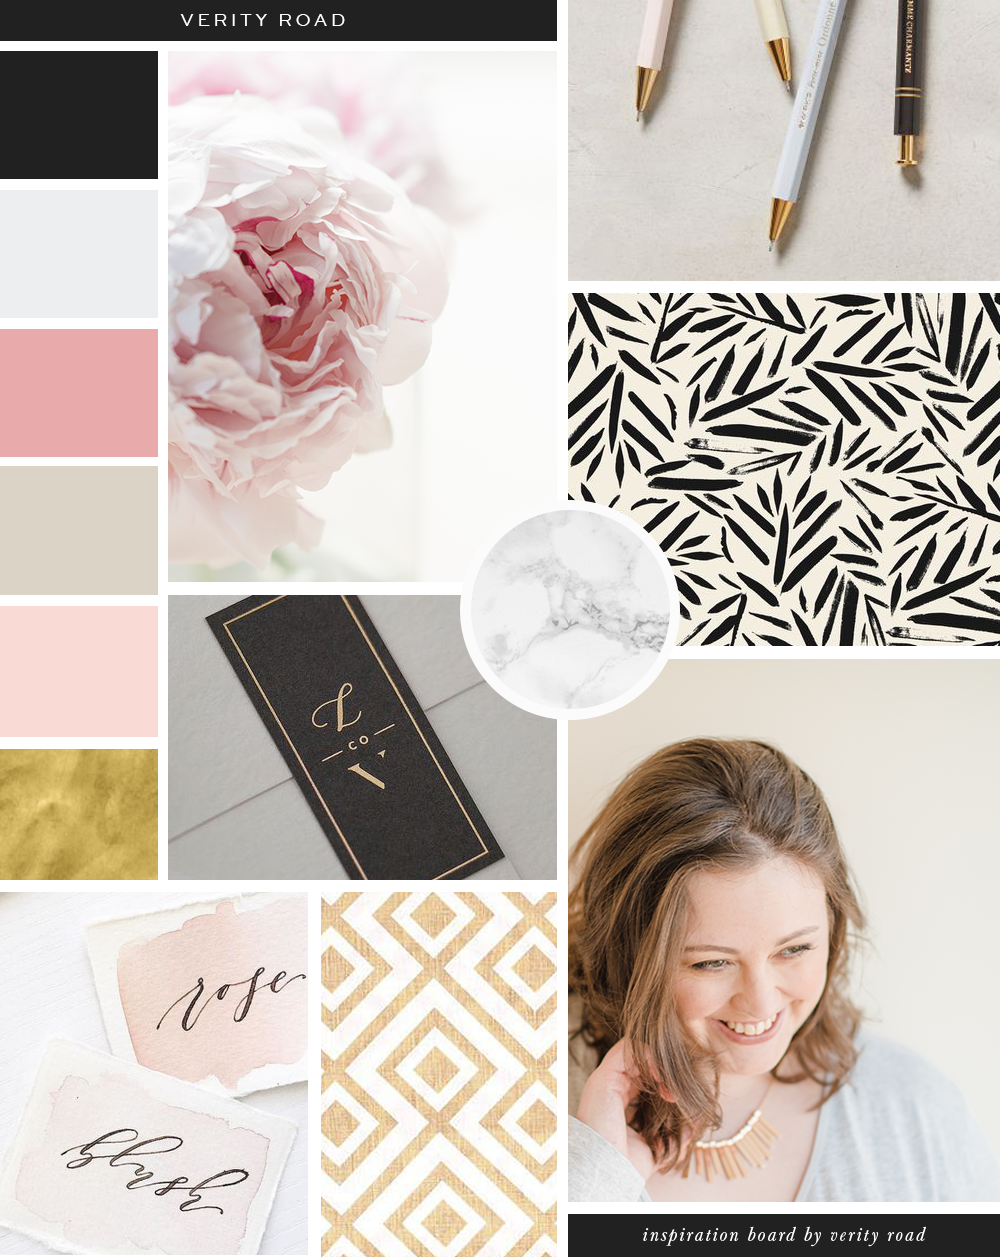 Mood board for Verity Road, luxury branding and web design for female entrepreneurs. Feminine branding, feminine business, business branding. Inspiration board of typography, script font, sans serif, black, gold, blush, latte, floral inspiration, marble pattern, geometric shapes, business owner, office, workspace, watercolor. photoshoot, brand photoshoot, headshot. See more for brand board, social media branding and web design.